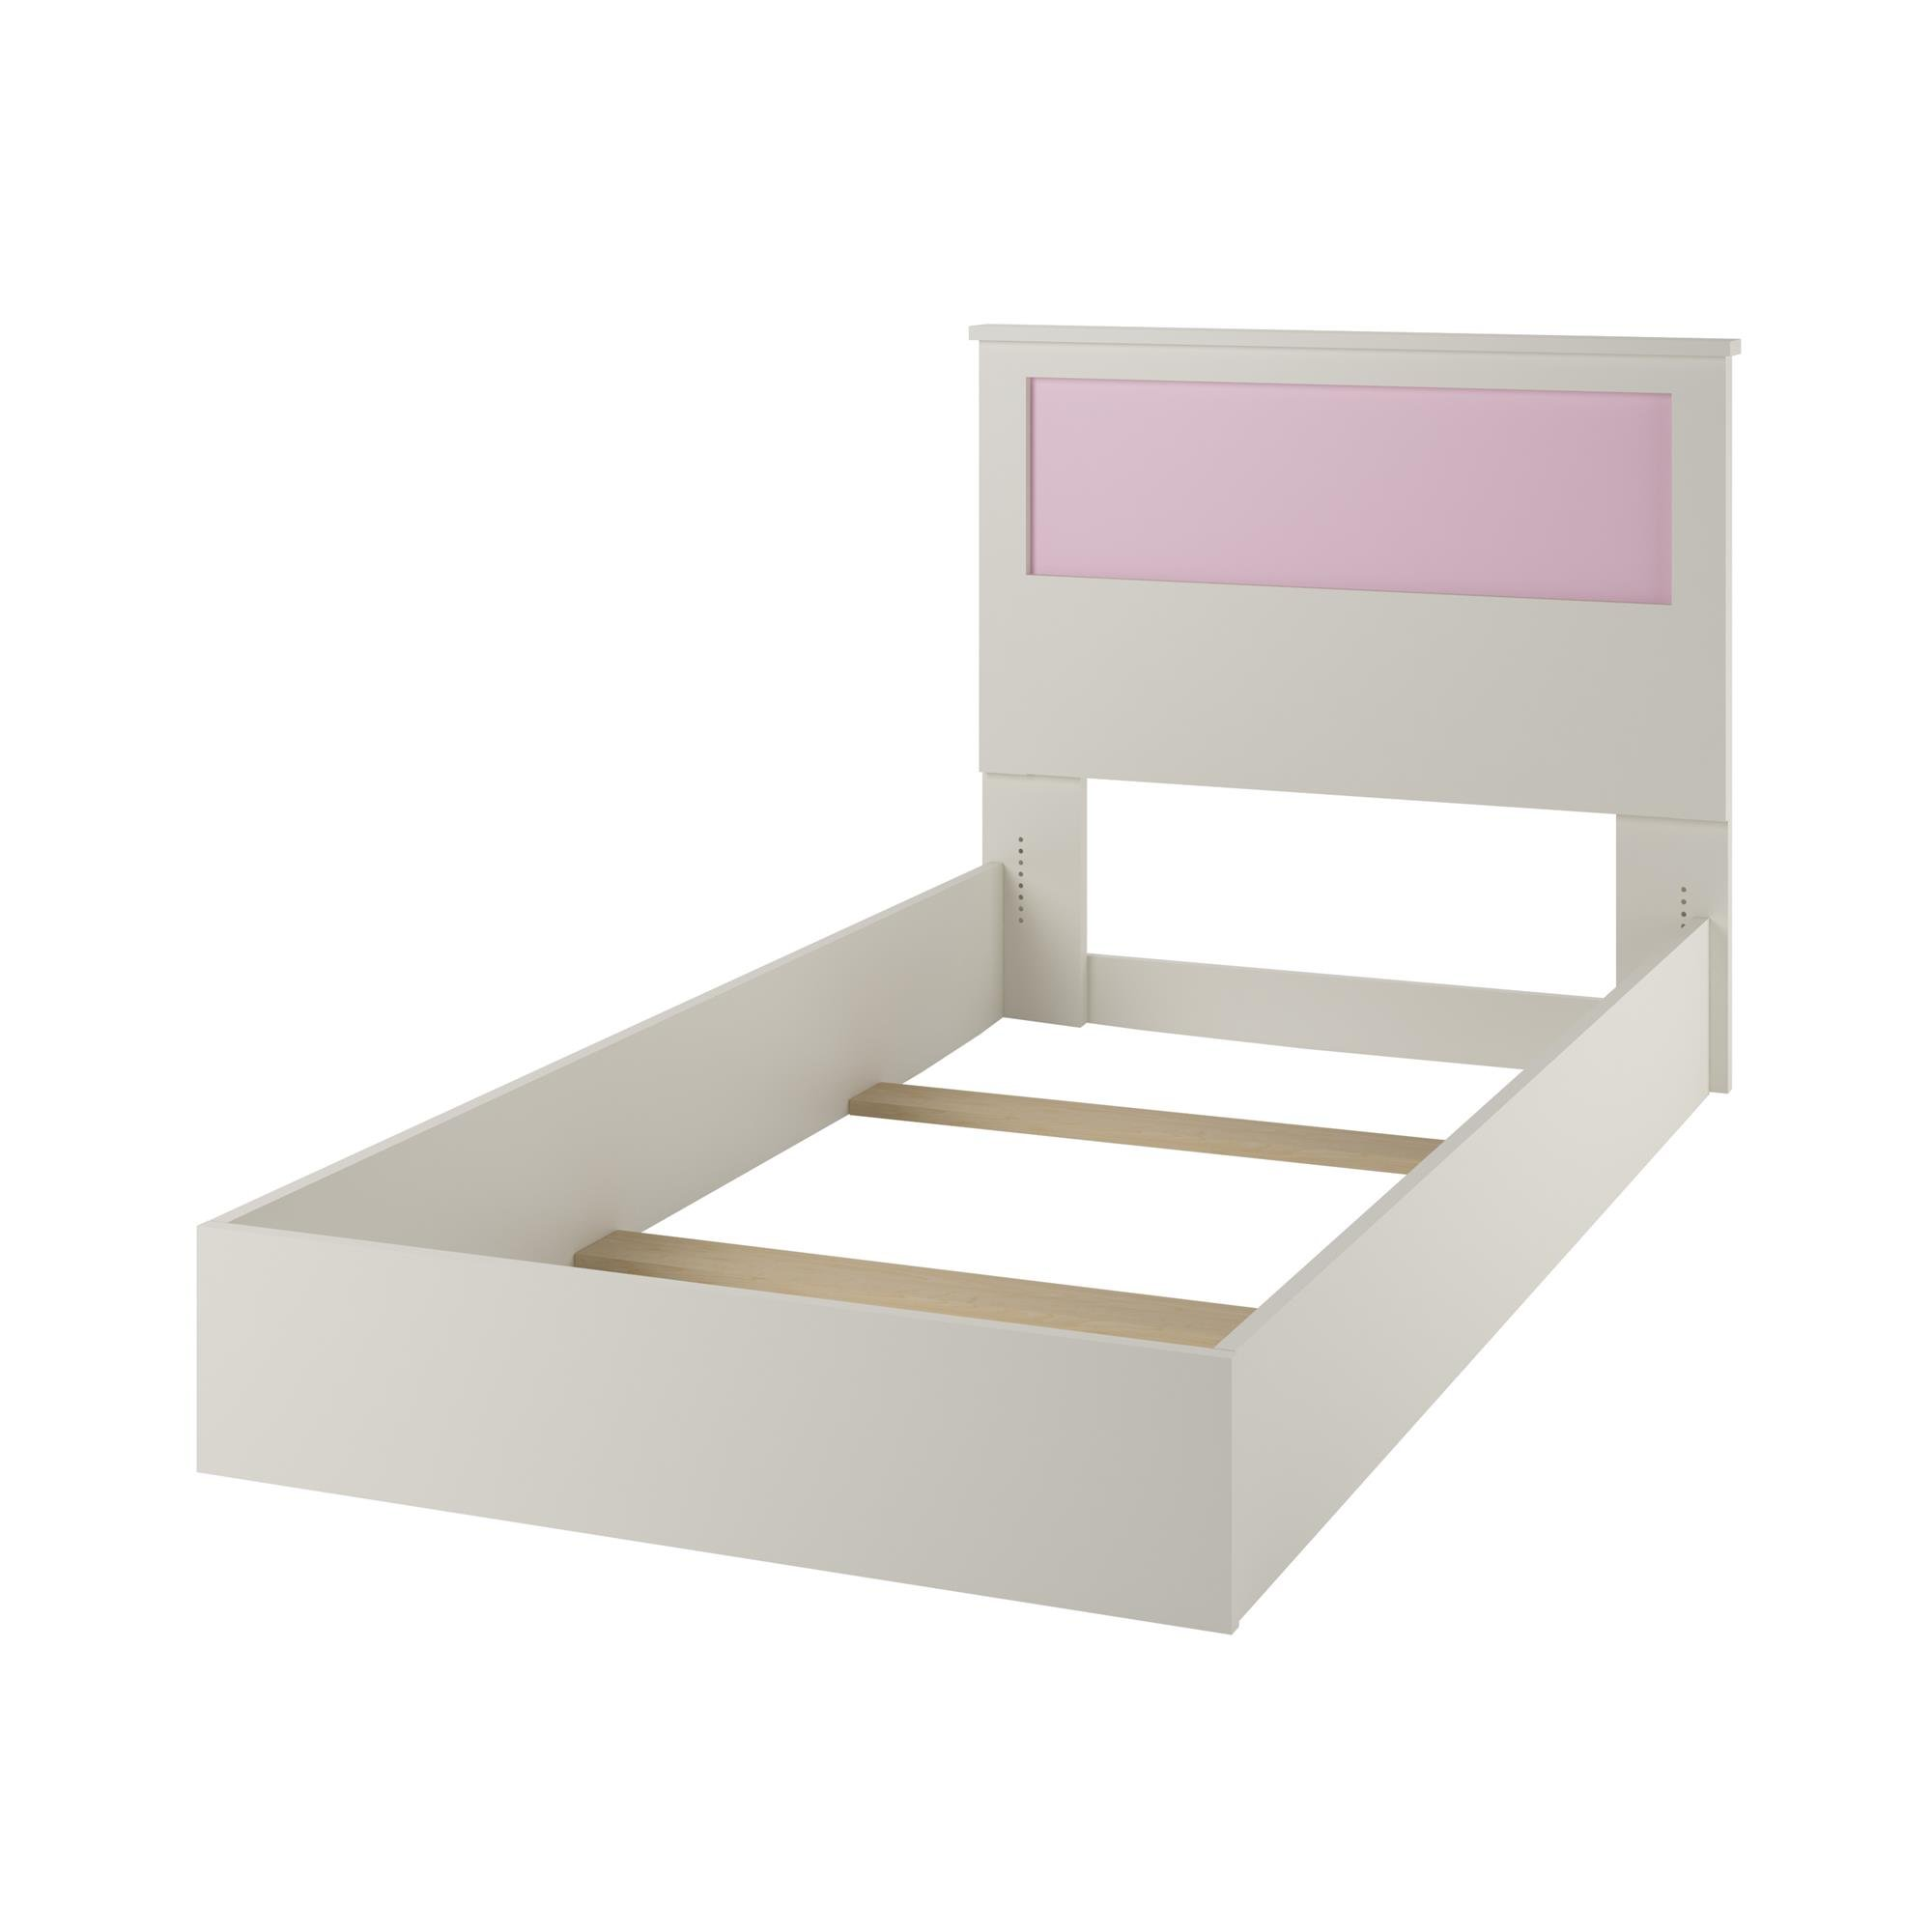 Ameriwood Home Skyler Twin Bed with Reversible Headboard, White by Cosco